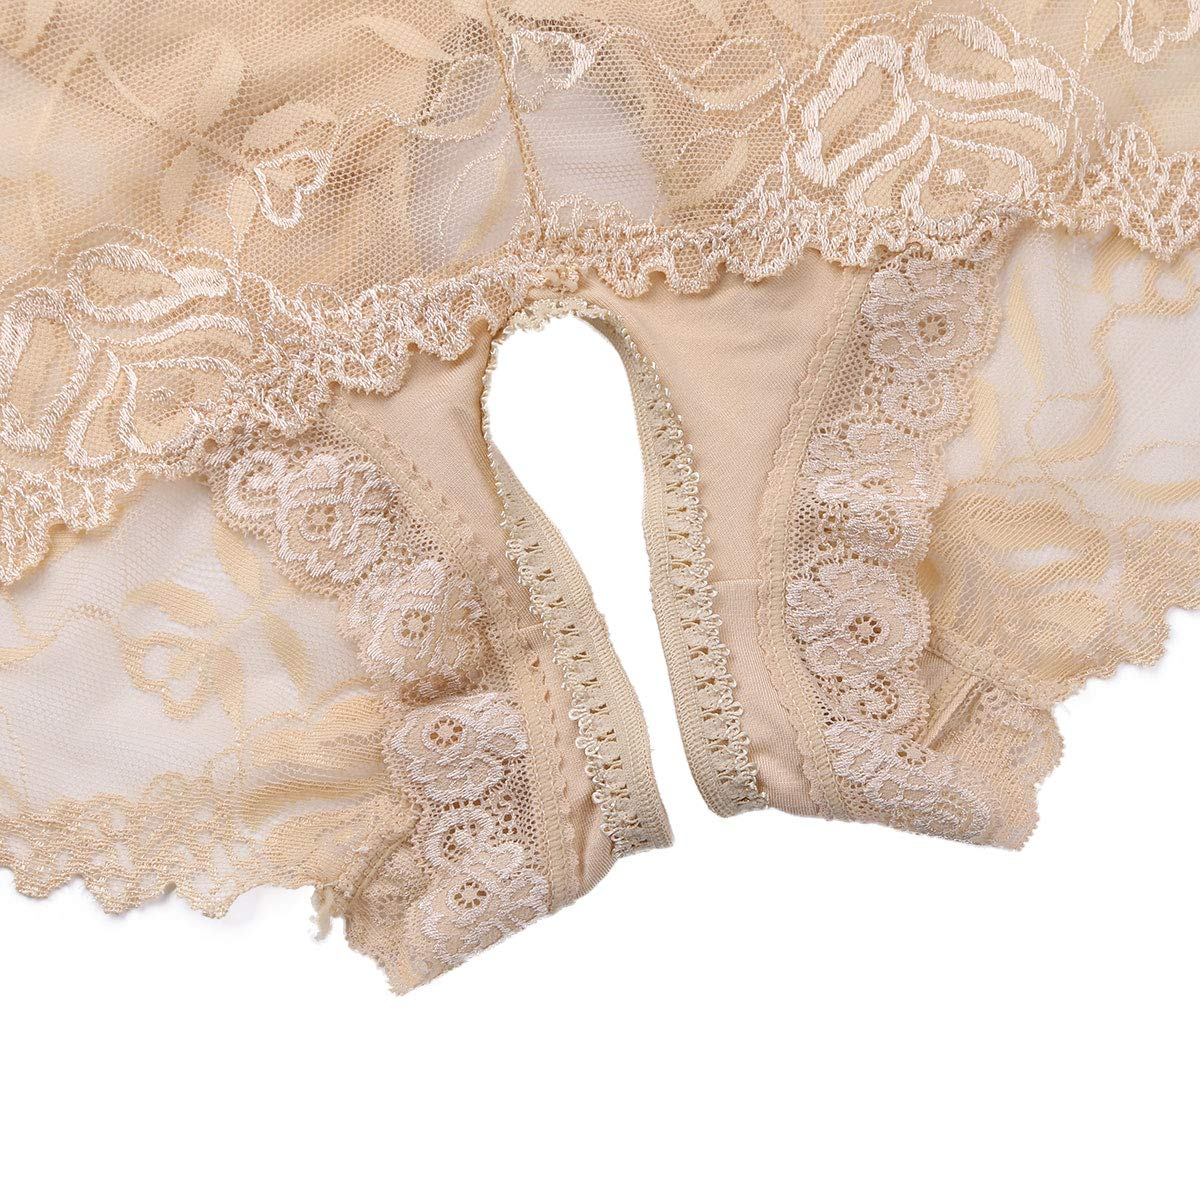 MSemis Sissy Men Lingerie Floral Lace Panties Underwear See Through Open Crotch Mesh Boxer Briefs